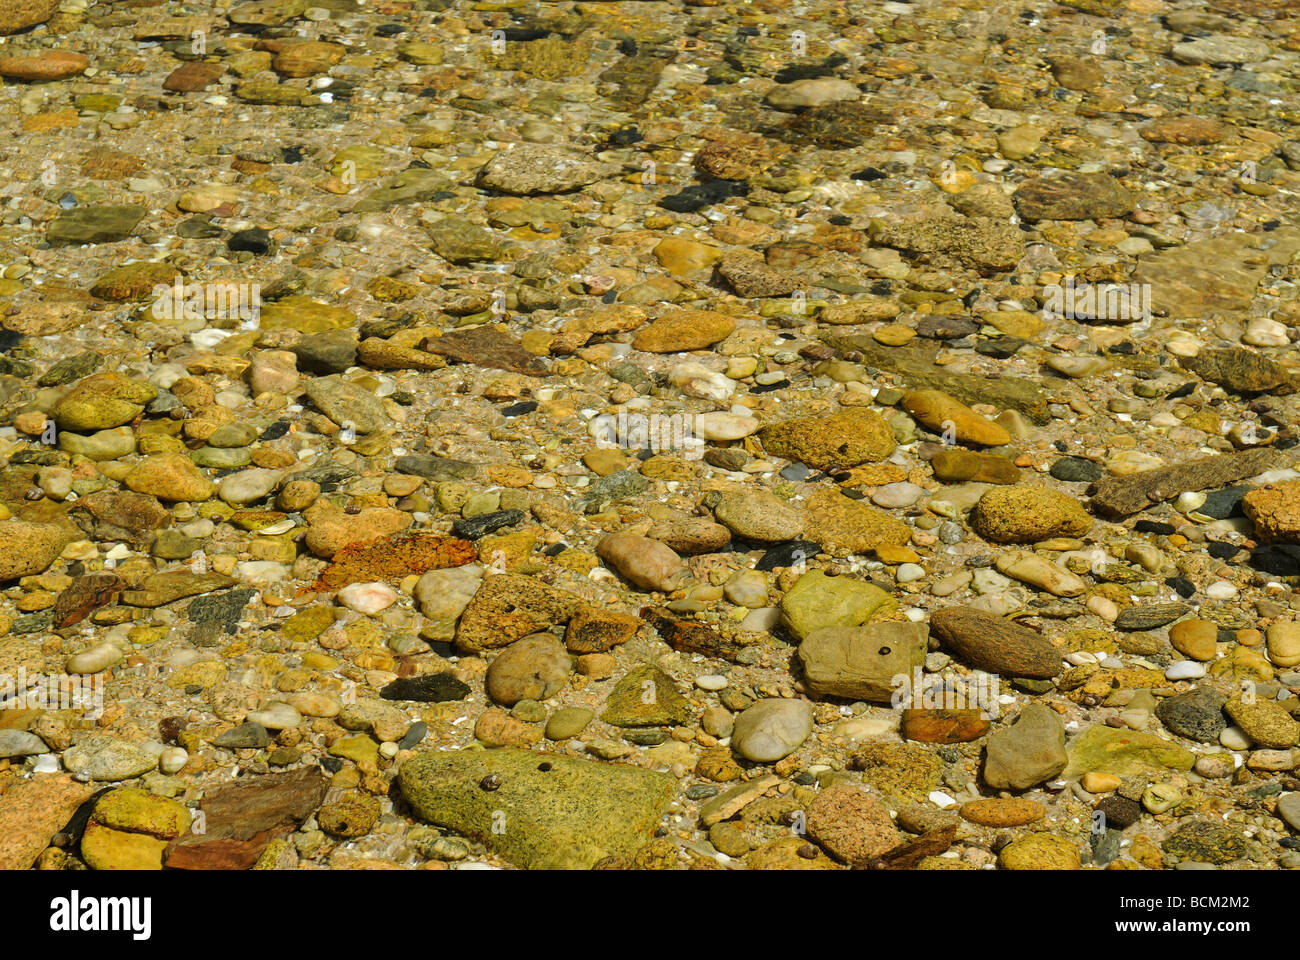 Mall Stones Stock Photos & Mall Stones Stock Images - Alamy